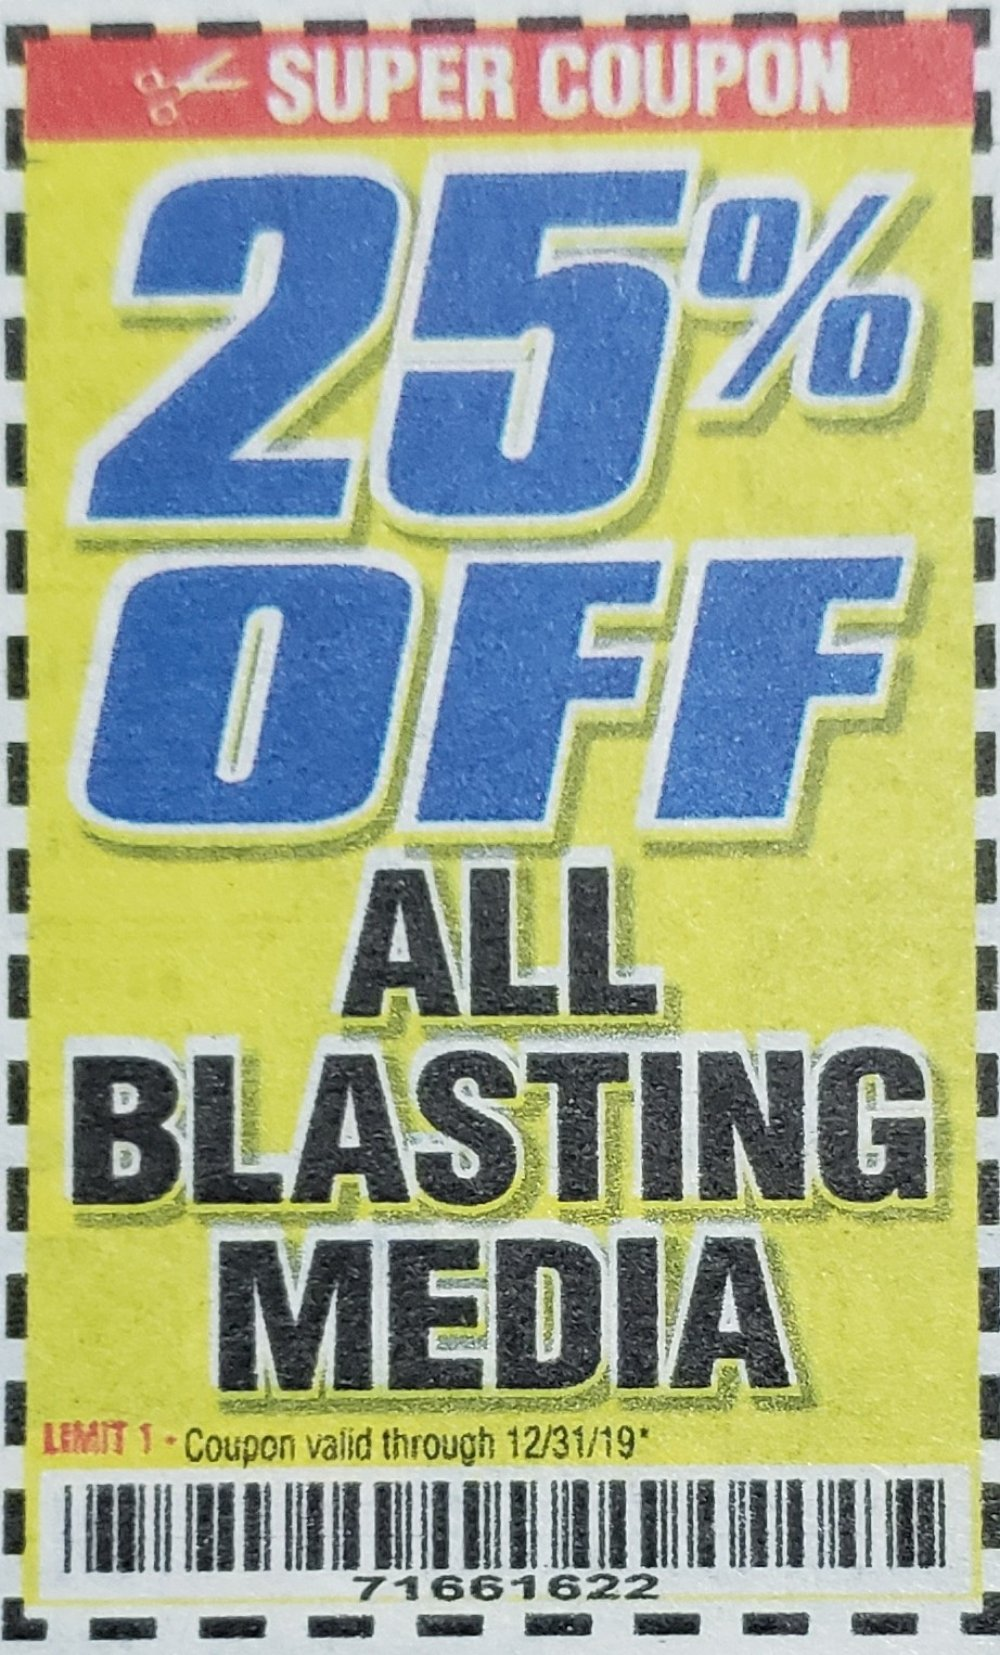 Harbor Freight Coupon, HF Coupons - 25% off for all BLASTING MEDIA